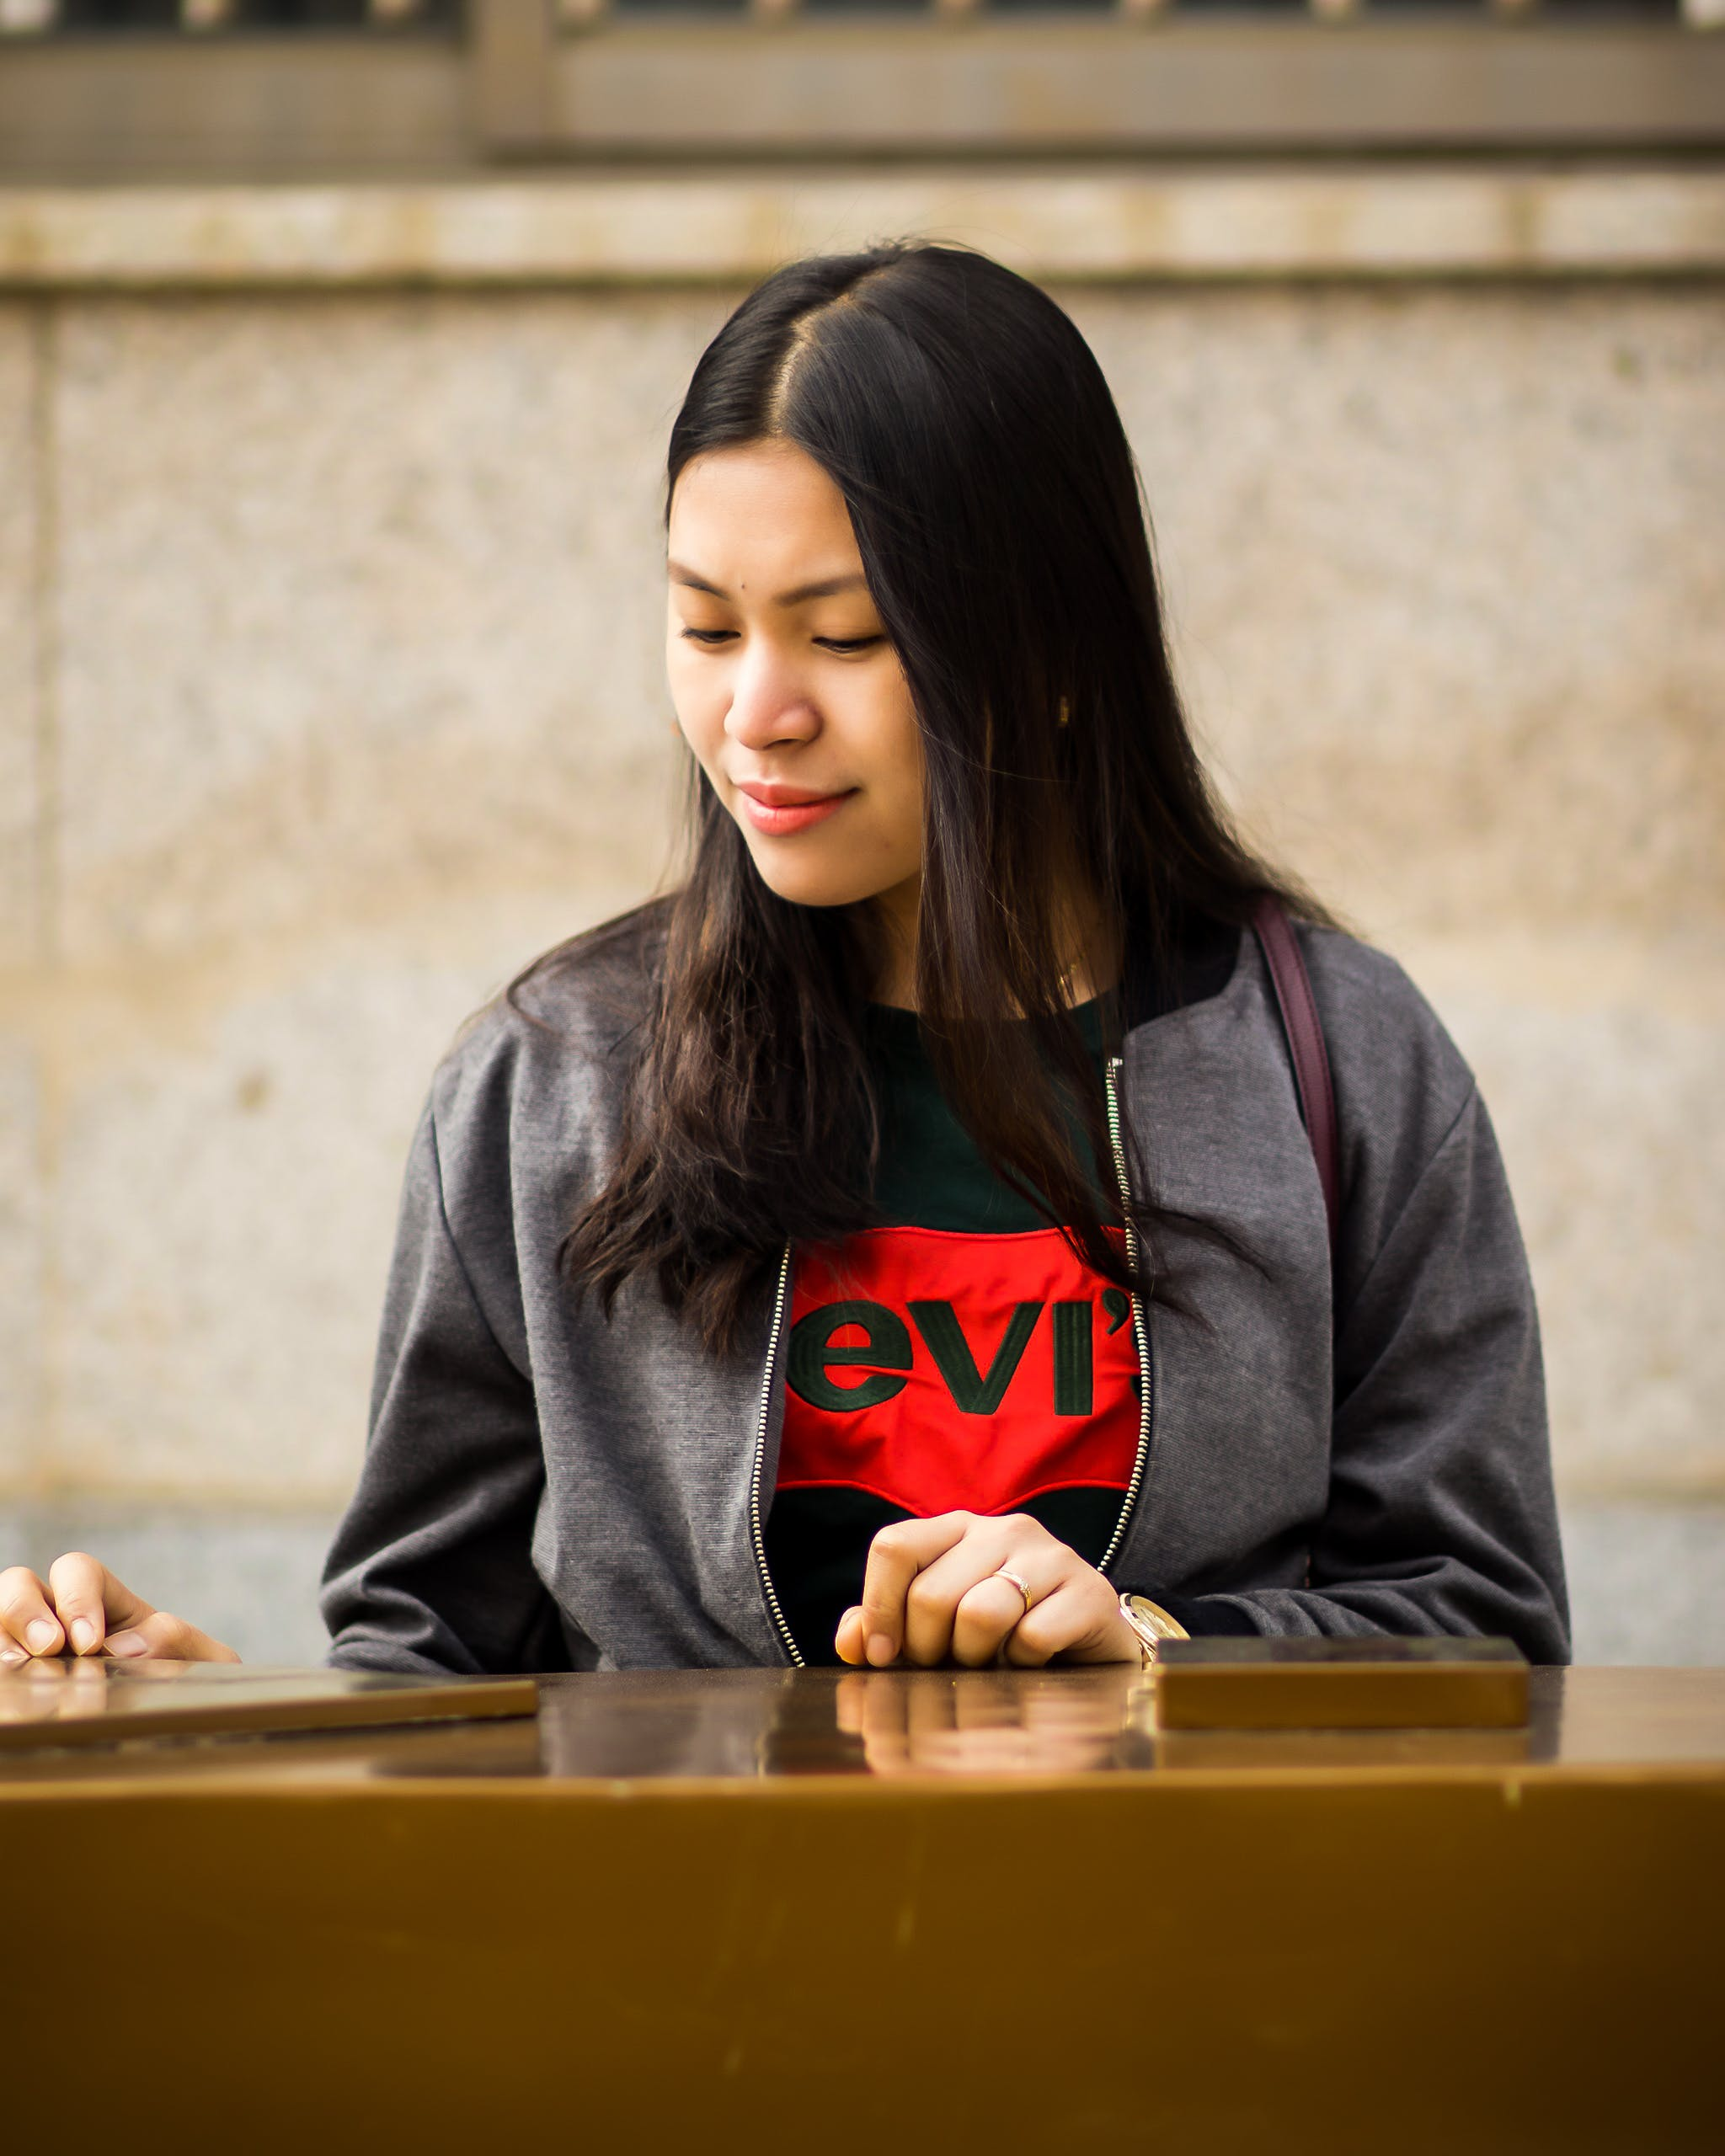 Woman Wearing Black Levis Crew-neck Shirt and Gray Zip-up Jacket